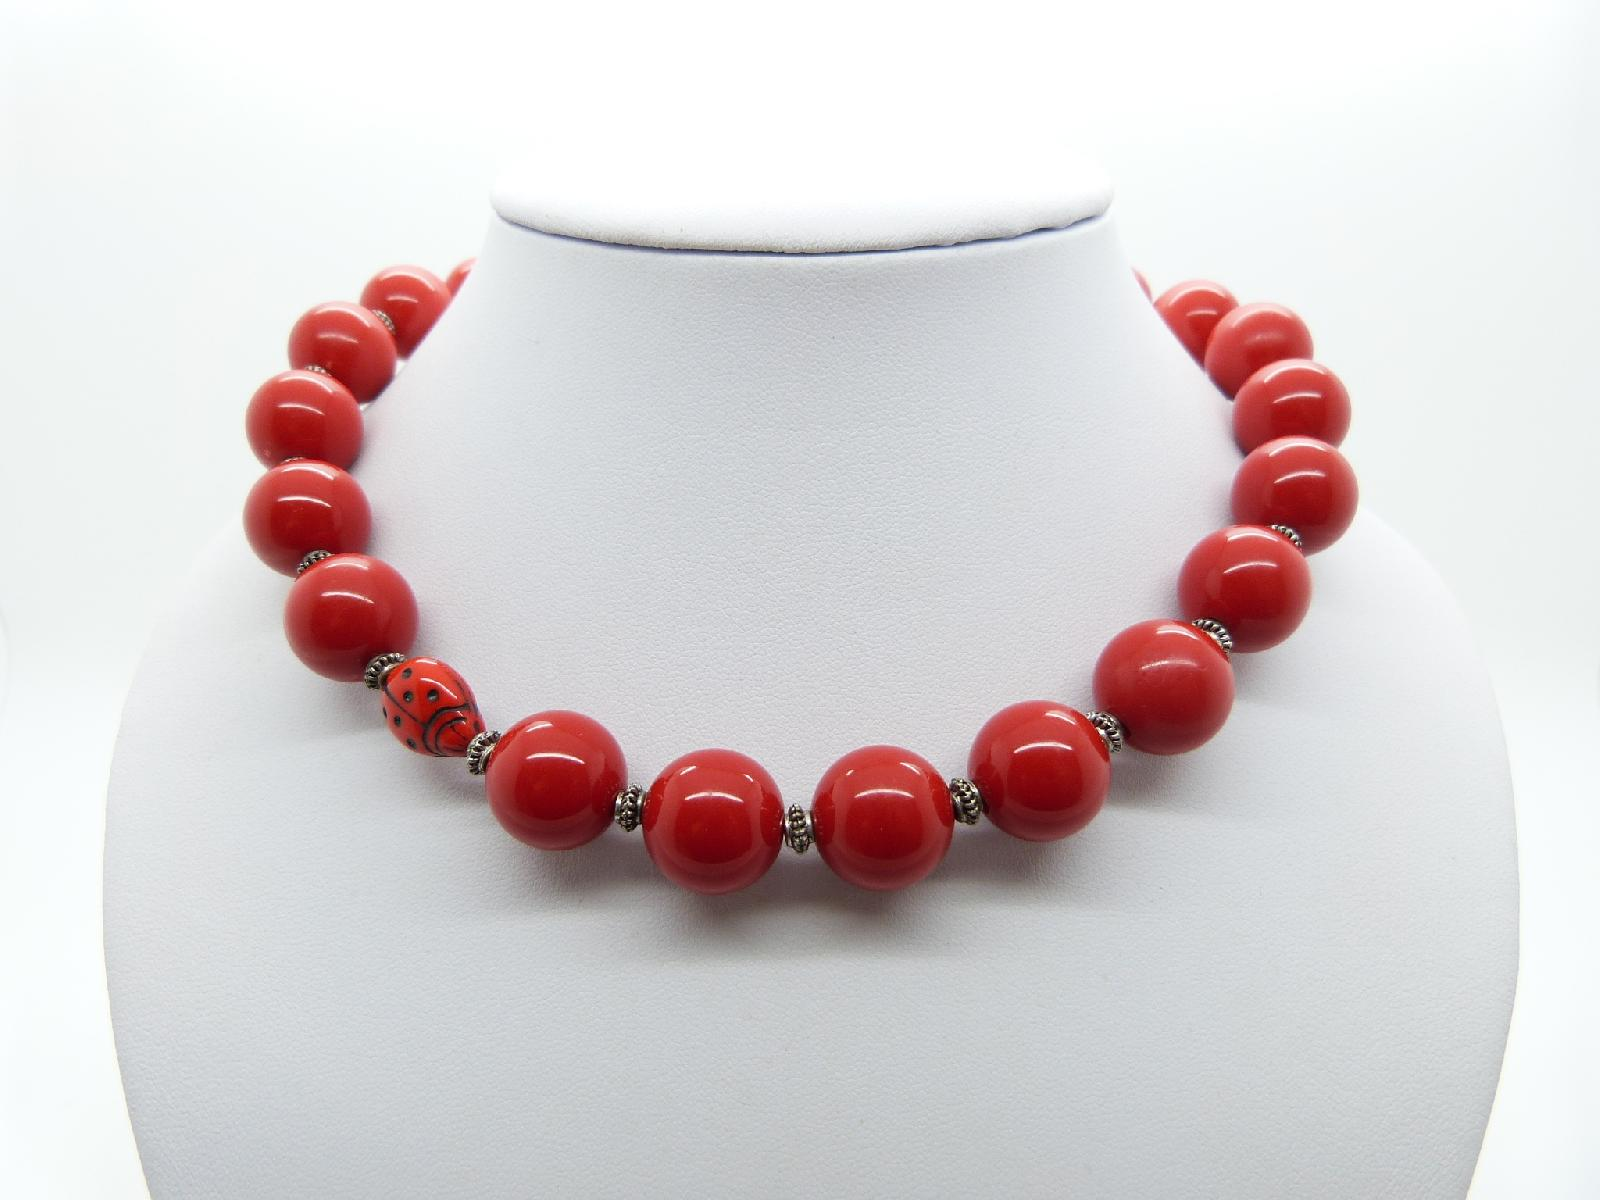 £14.00 - Vintage Redesigned Unique 1950s Red Plastic Bead Ladybird Necklace 46cms